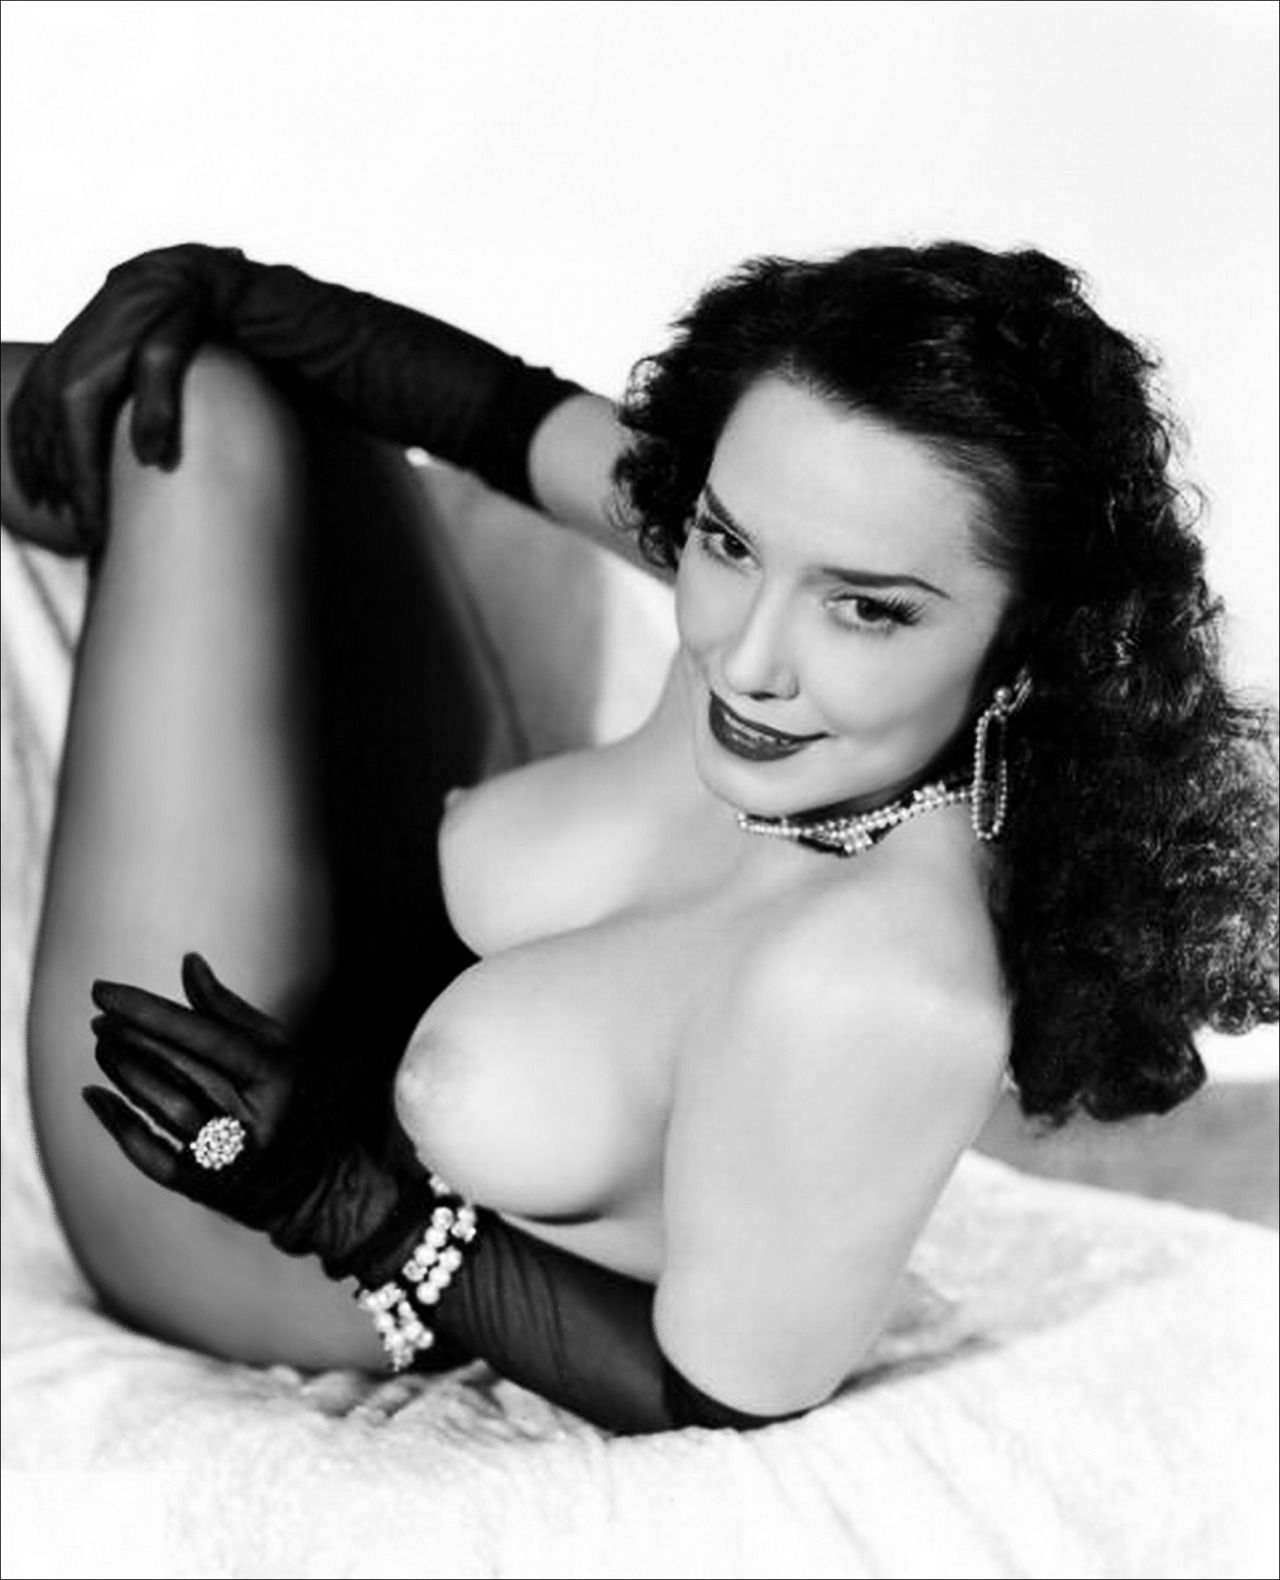 1950s Style Porn - Evelyn West 1950s Retro Nude Pic – Amateur Porn Pics